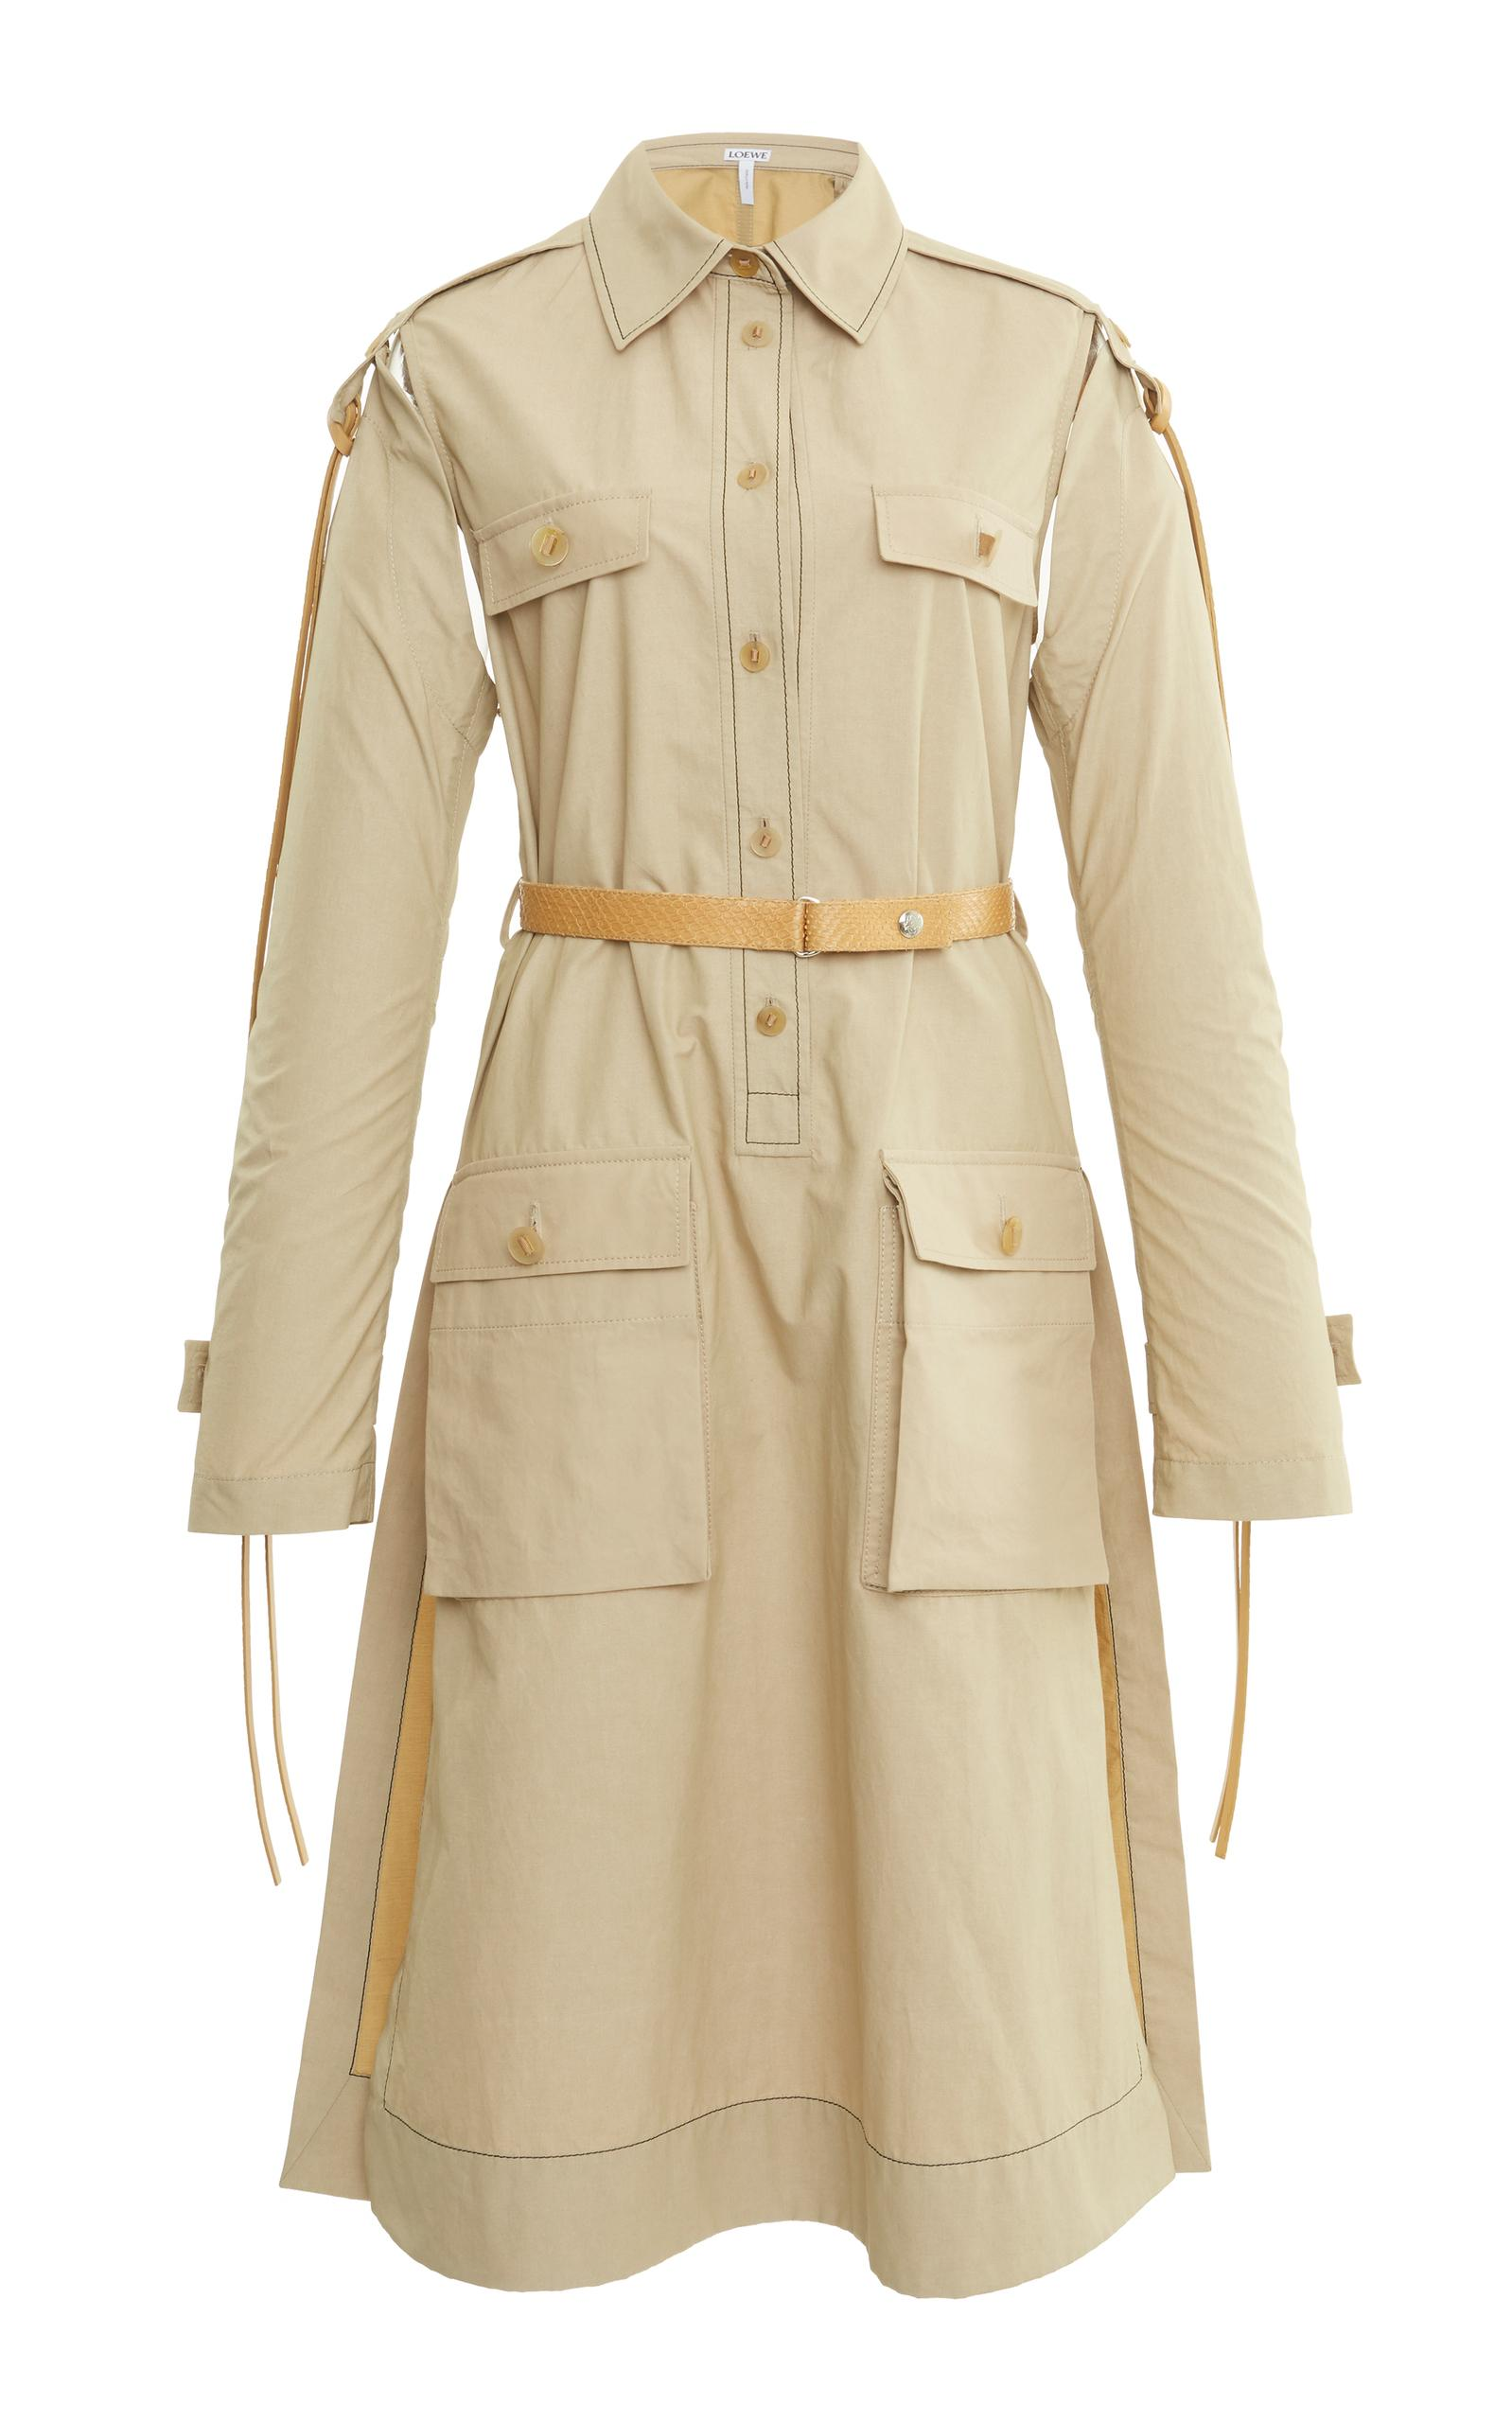 Loewe Patch Pocket Shirtdress In Neutral